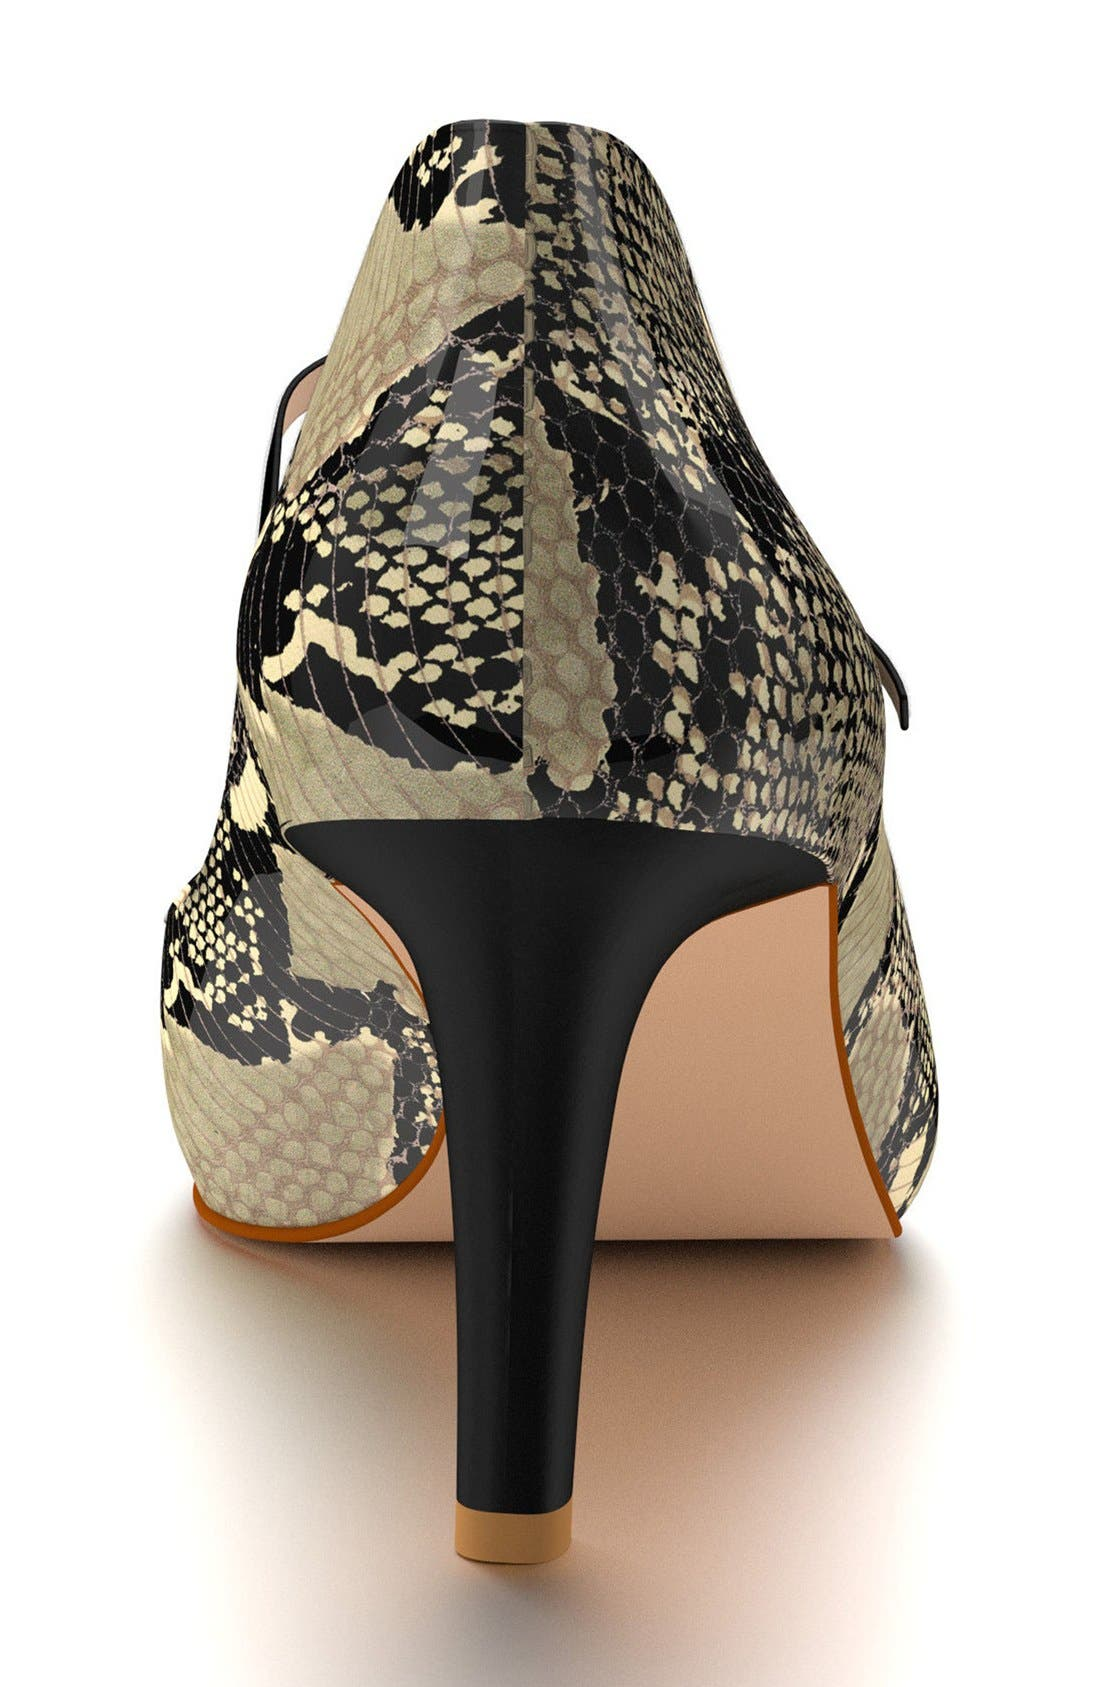 Mary Jane Pump,                             Alternate thumbnail 2, color,                             Beige Snake Print Leather